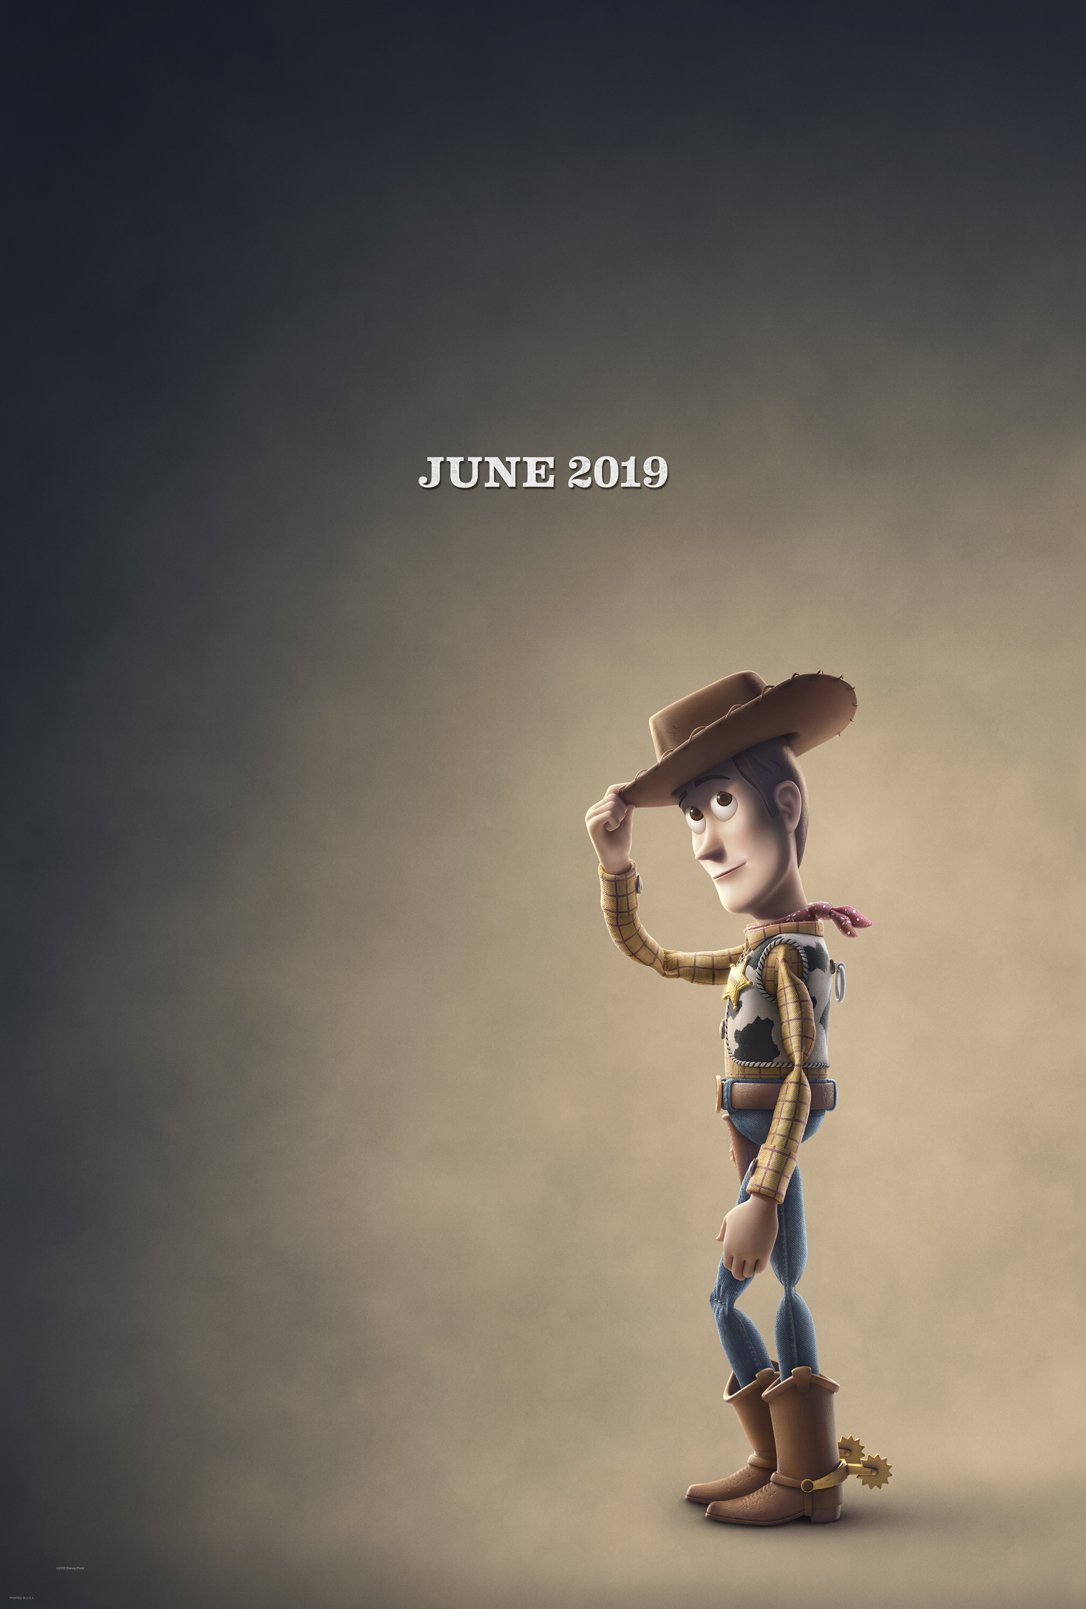 First Look: Toy Story 4 Trailer & Poster